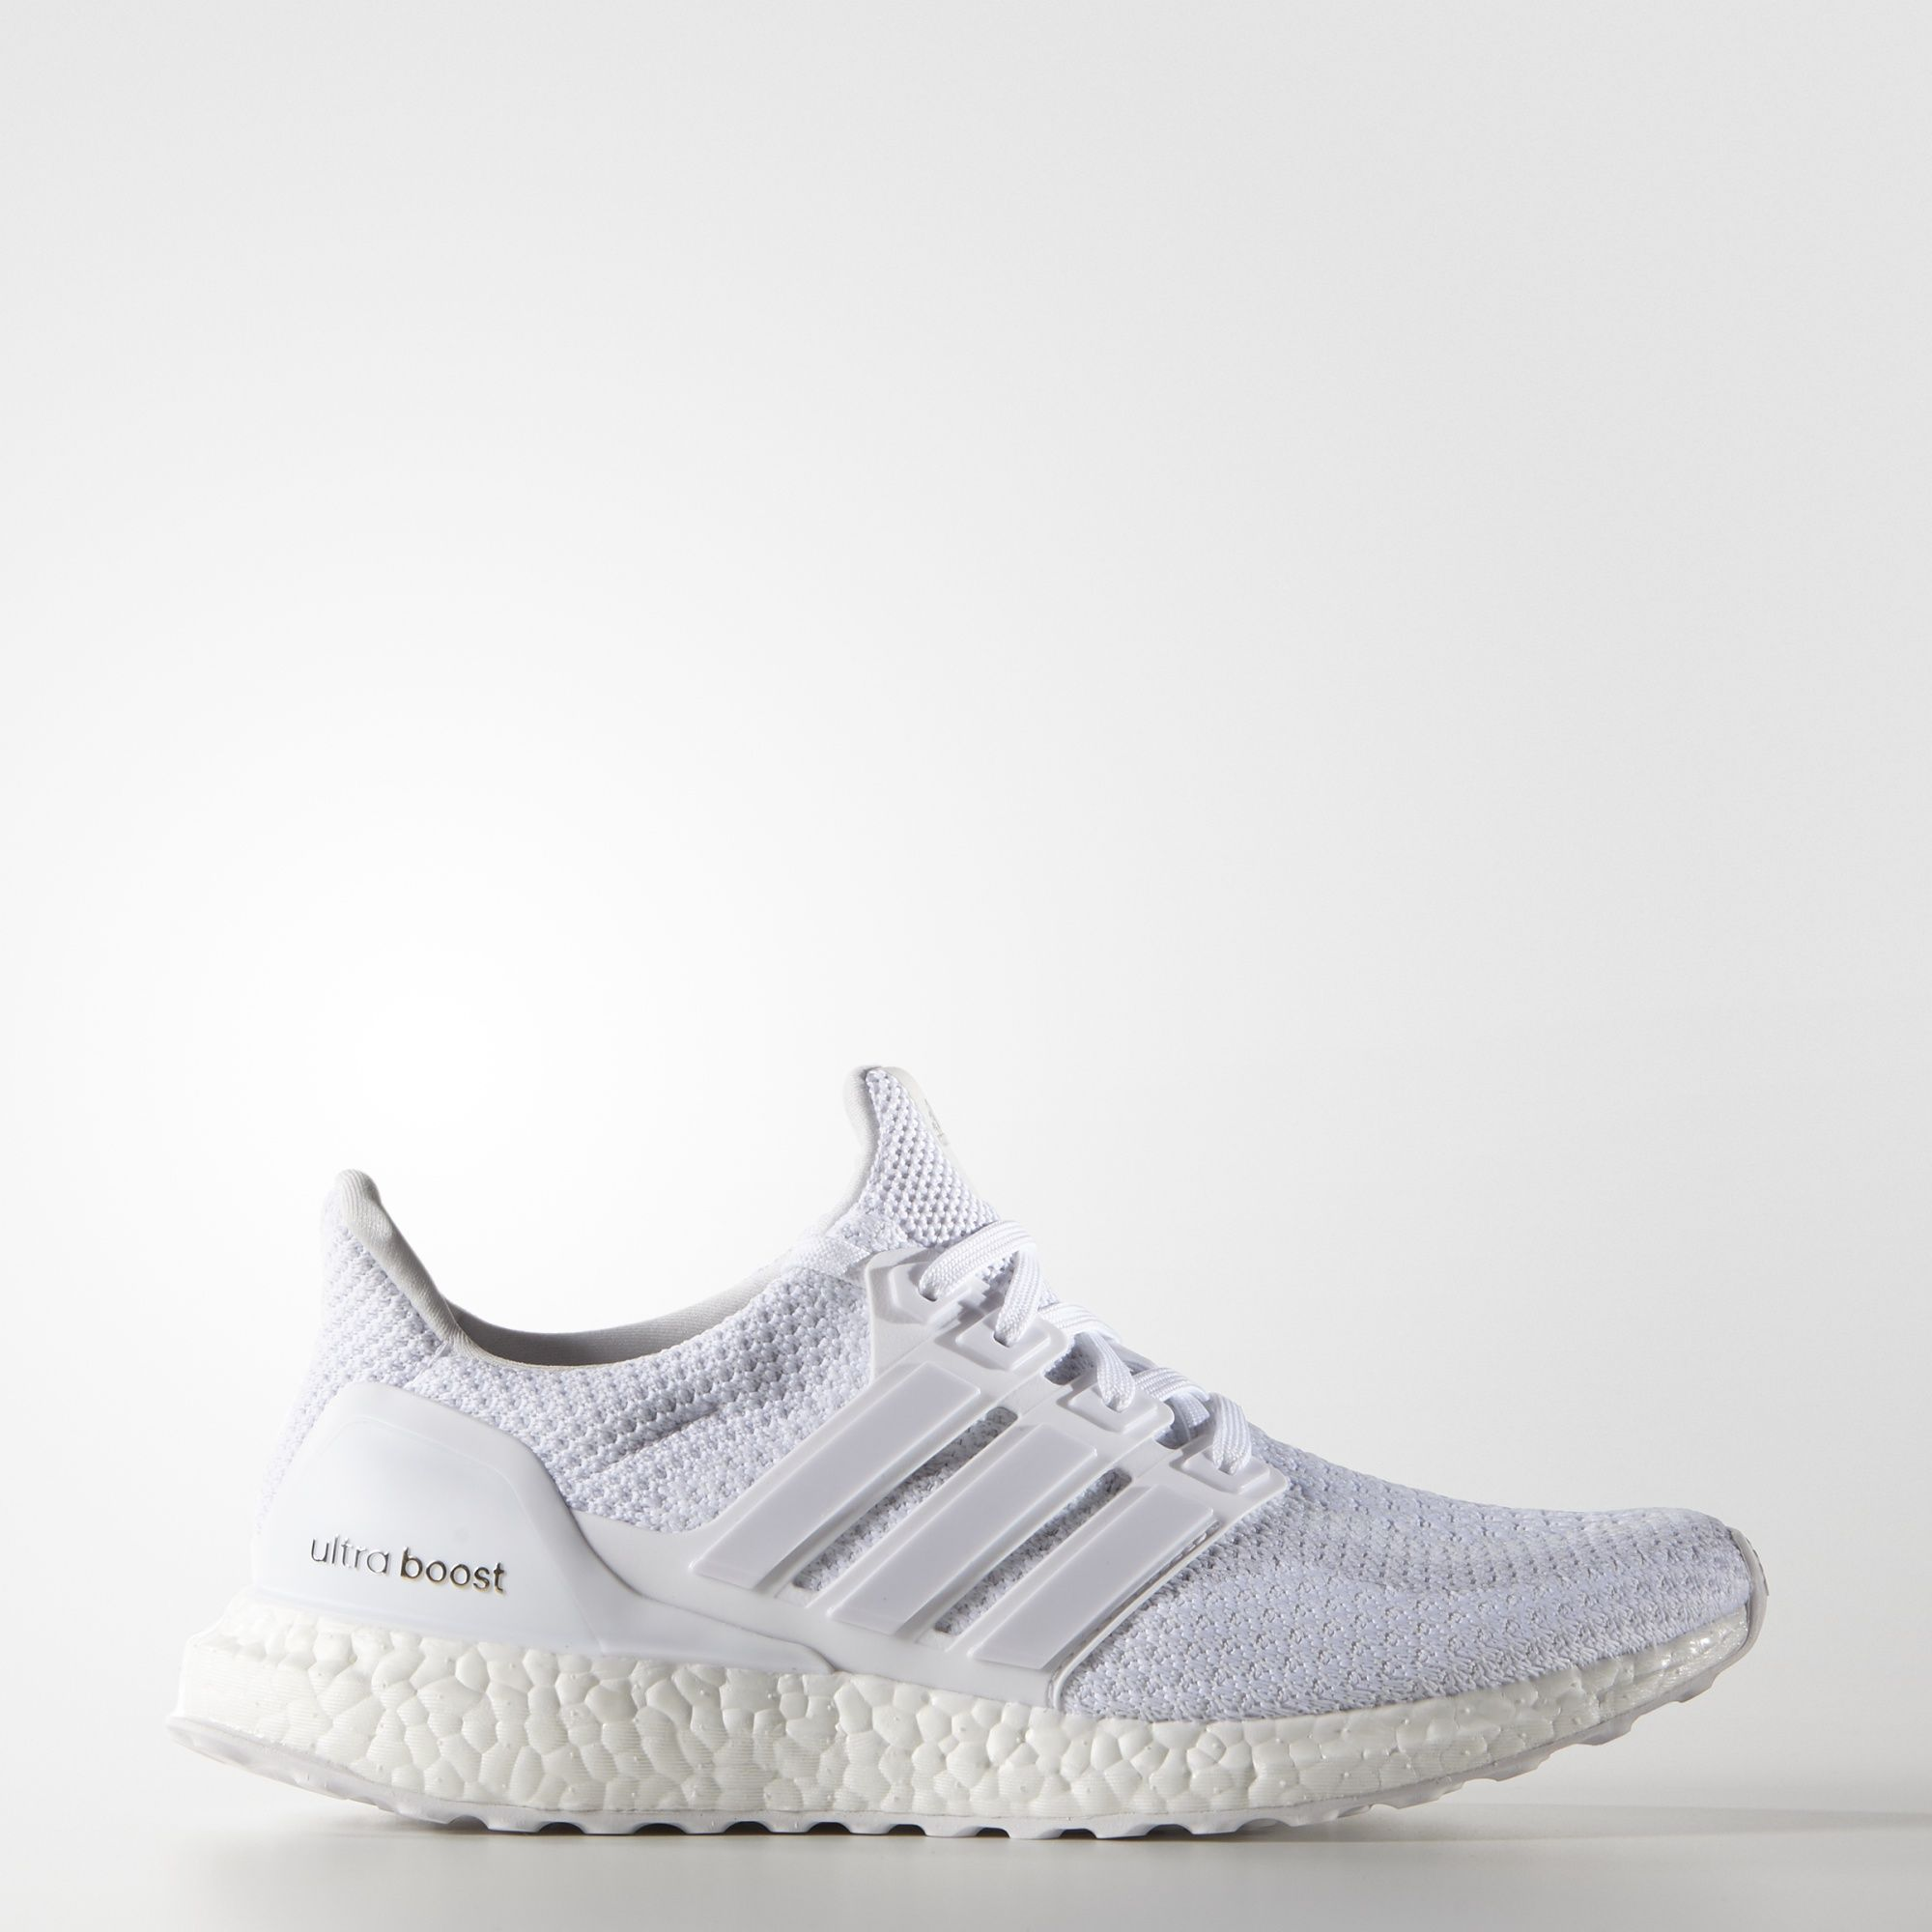 outlet store a9935 c57d9 Published 4th November 2016 at 2000 × 2000 in adidas-ultra-boost -ladies-1473159745.jpg